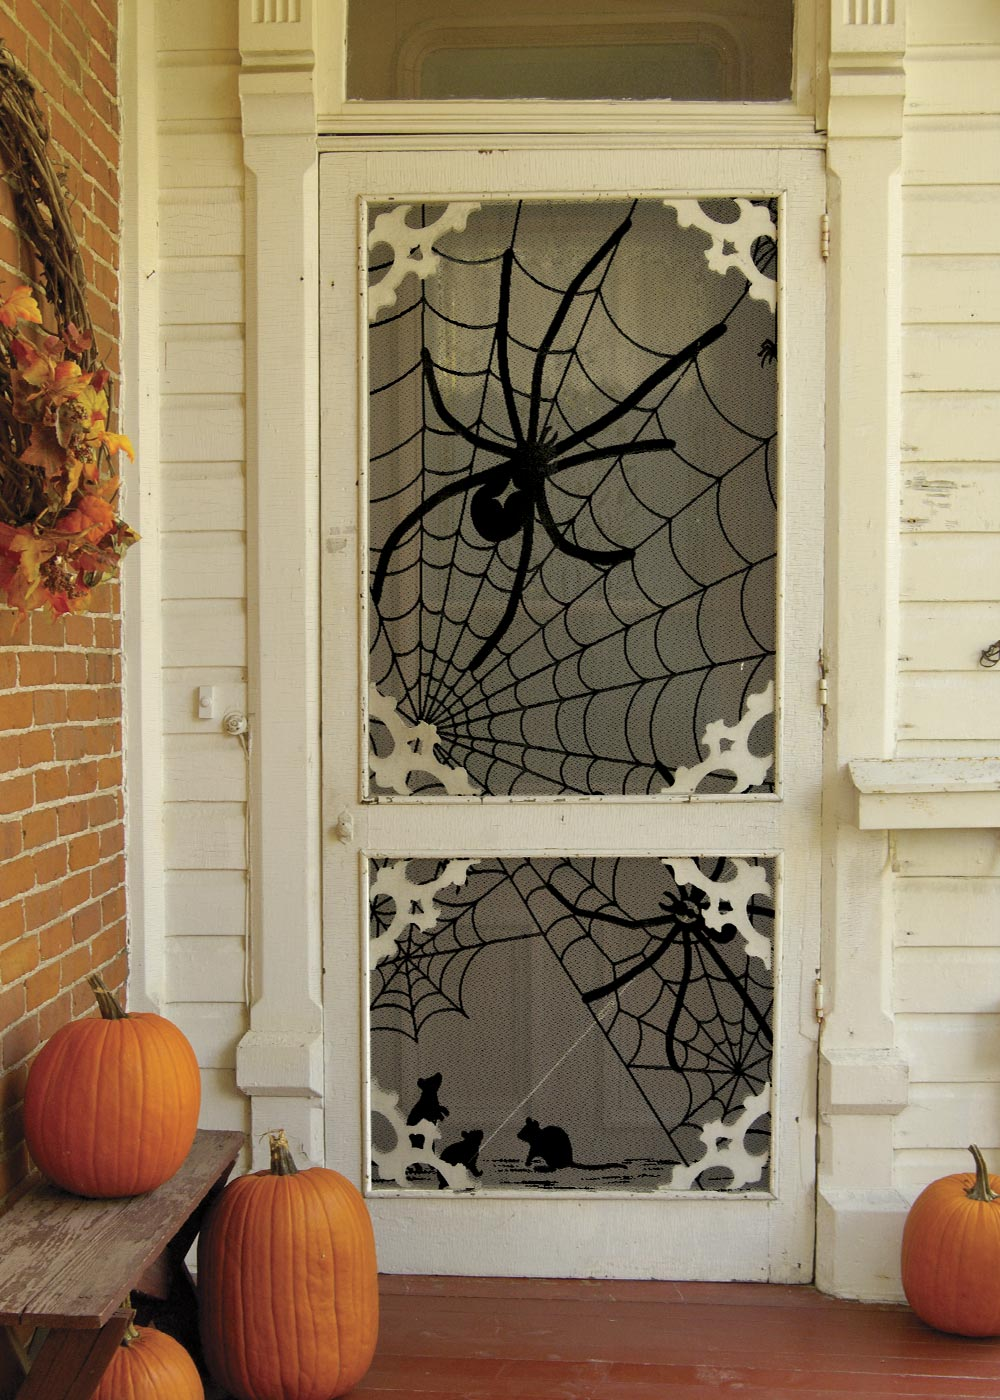 Tangled Web Scenic Panel 30% OFF! (3 LEFT)